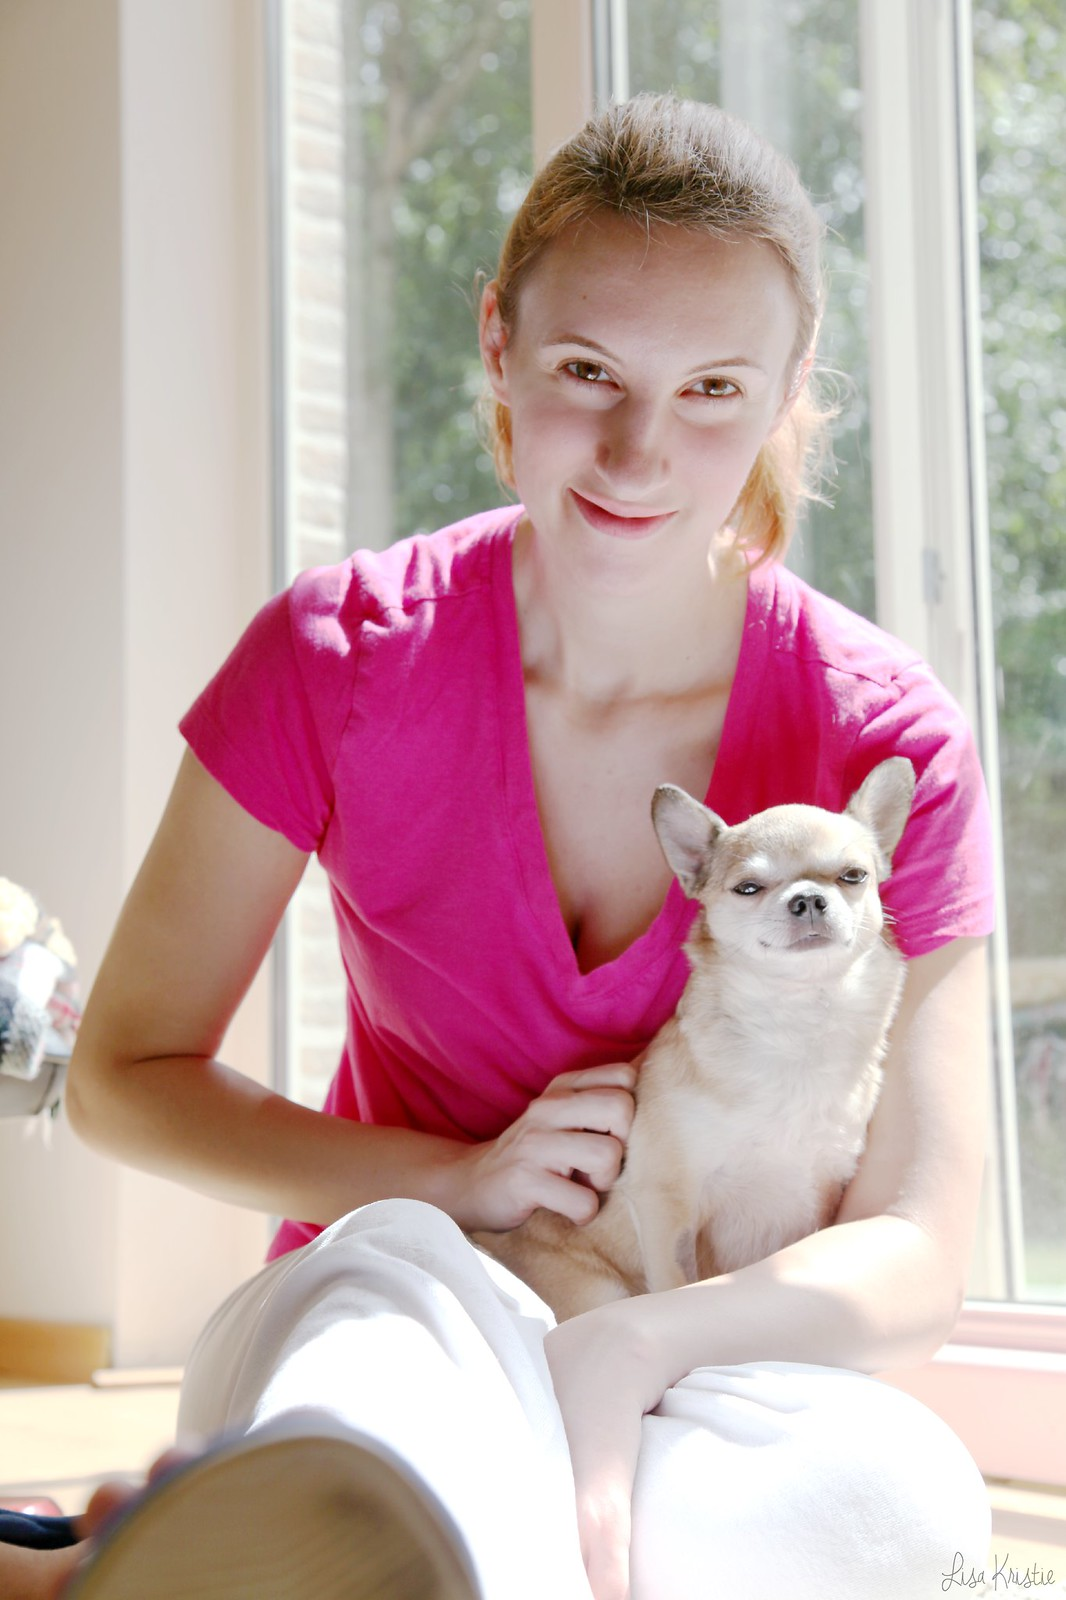 chihuahua portrait female woman holding pet wolf wolfthedog beige short haired smooth coat male dog puppy sitting on lap tiny small cute adorable home